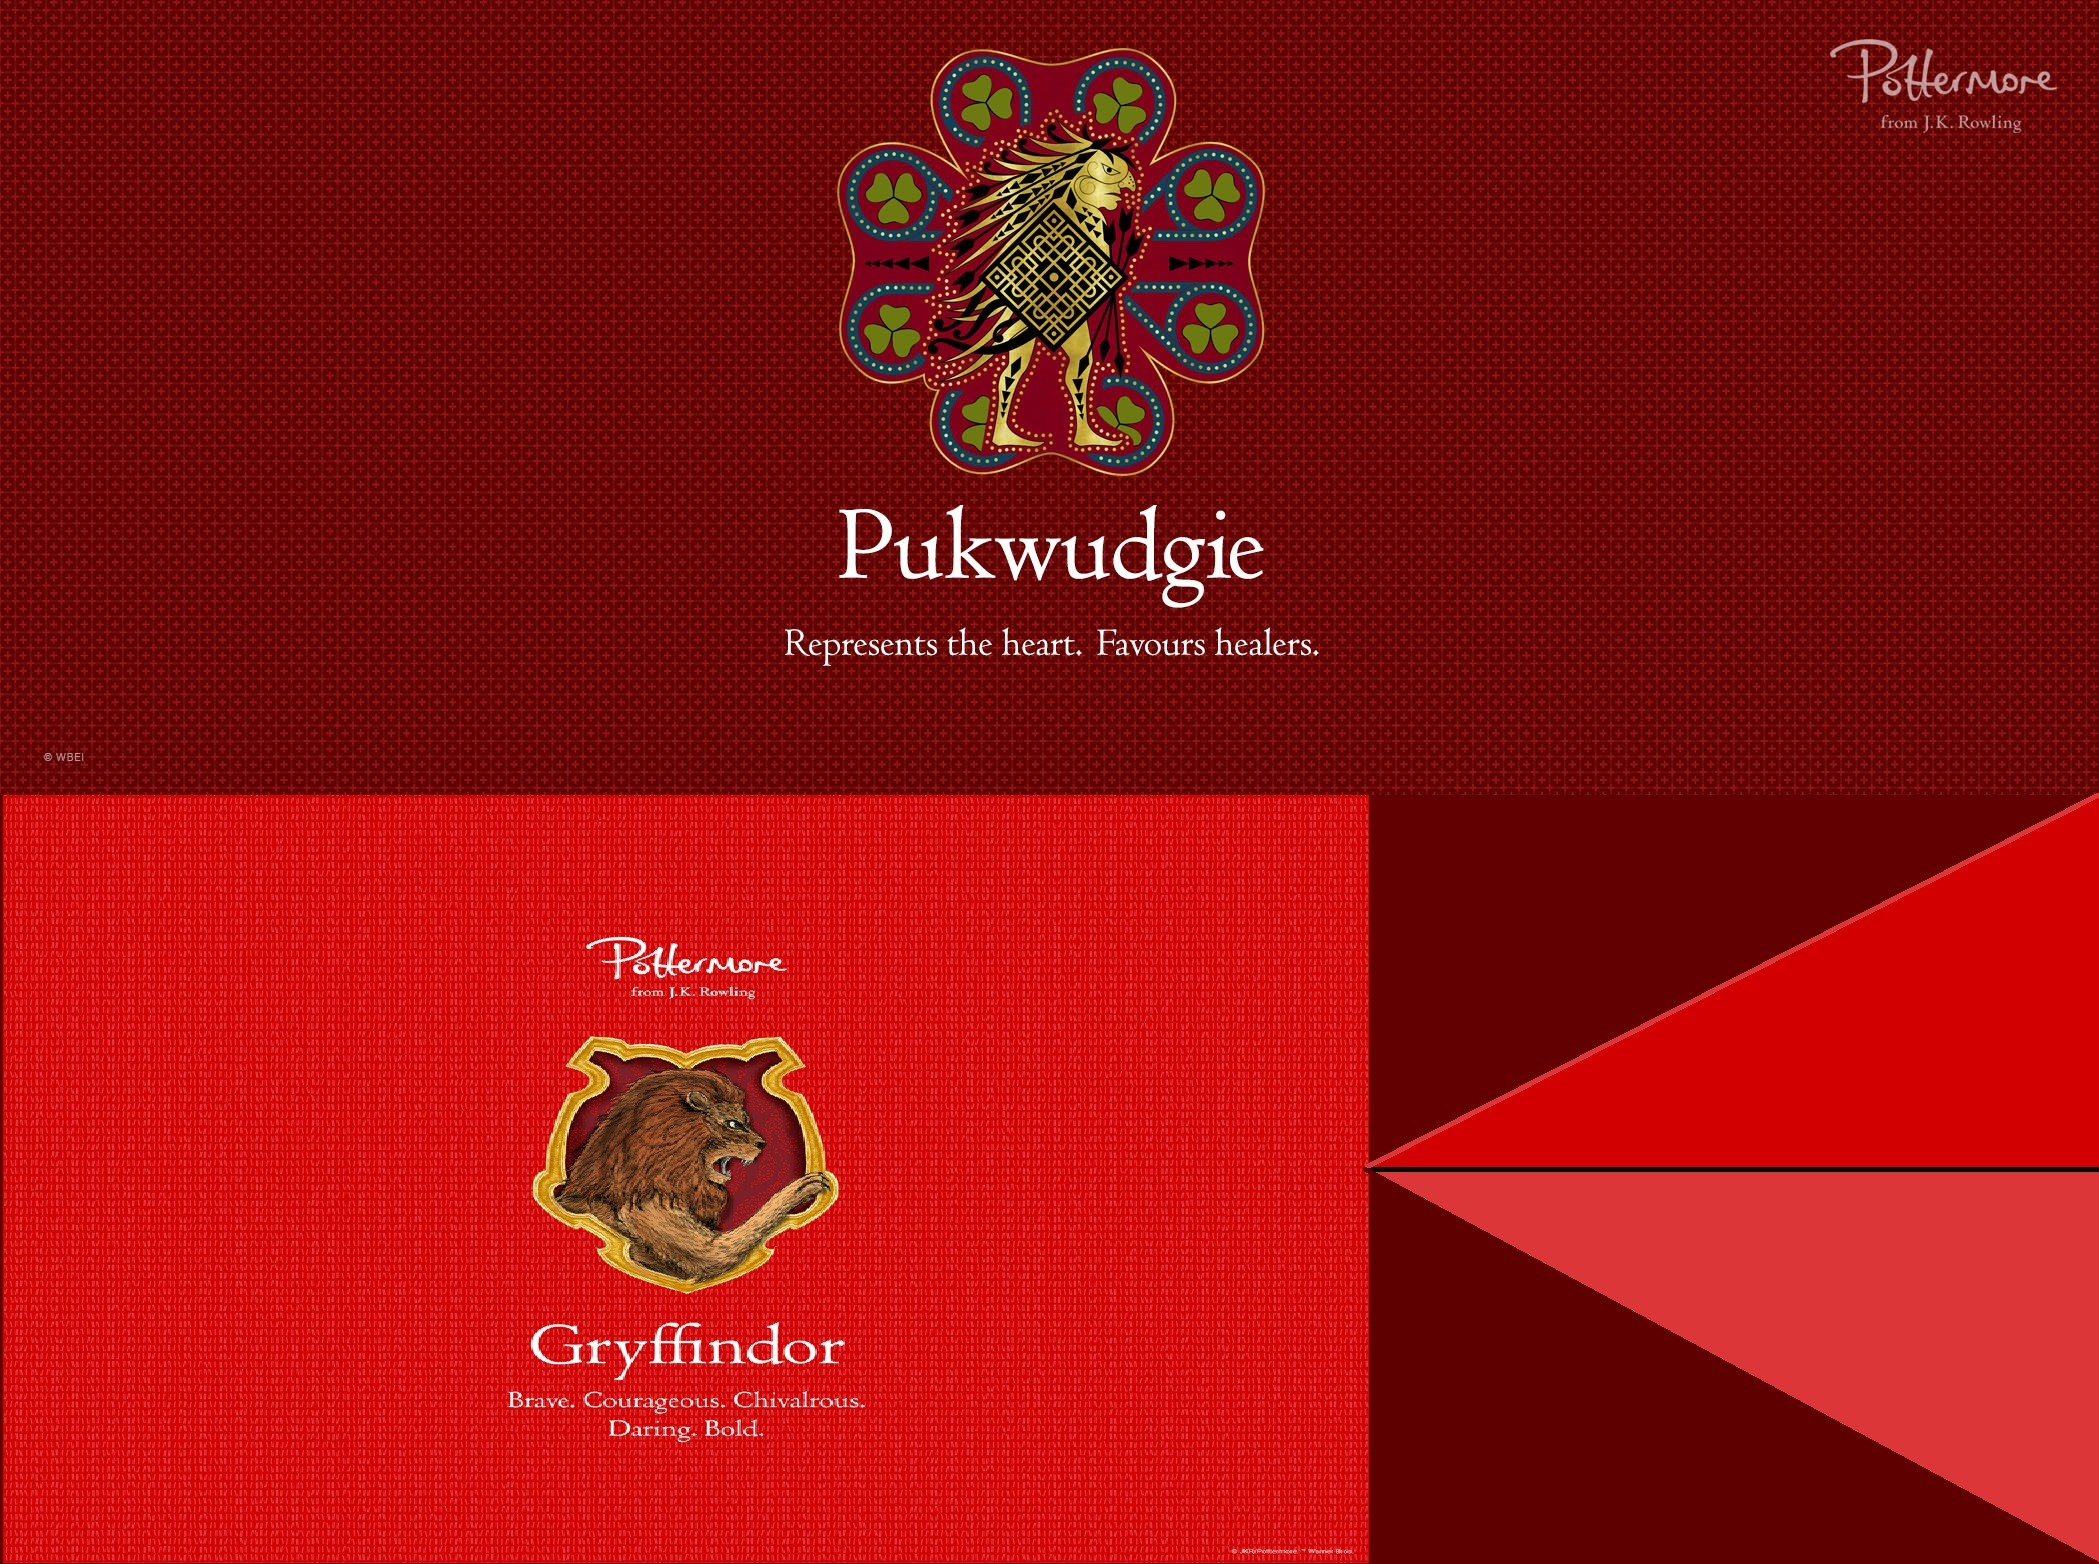 Res: 2099x1564, Wallpapers Pukwudgie-Gryffindor by JuniorS89 Wallpapers Pukwudgie-Gryffindor  by JuniorS89